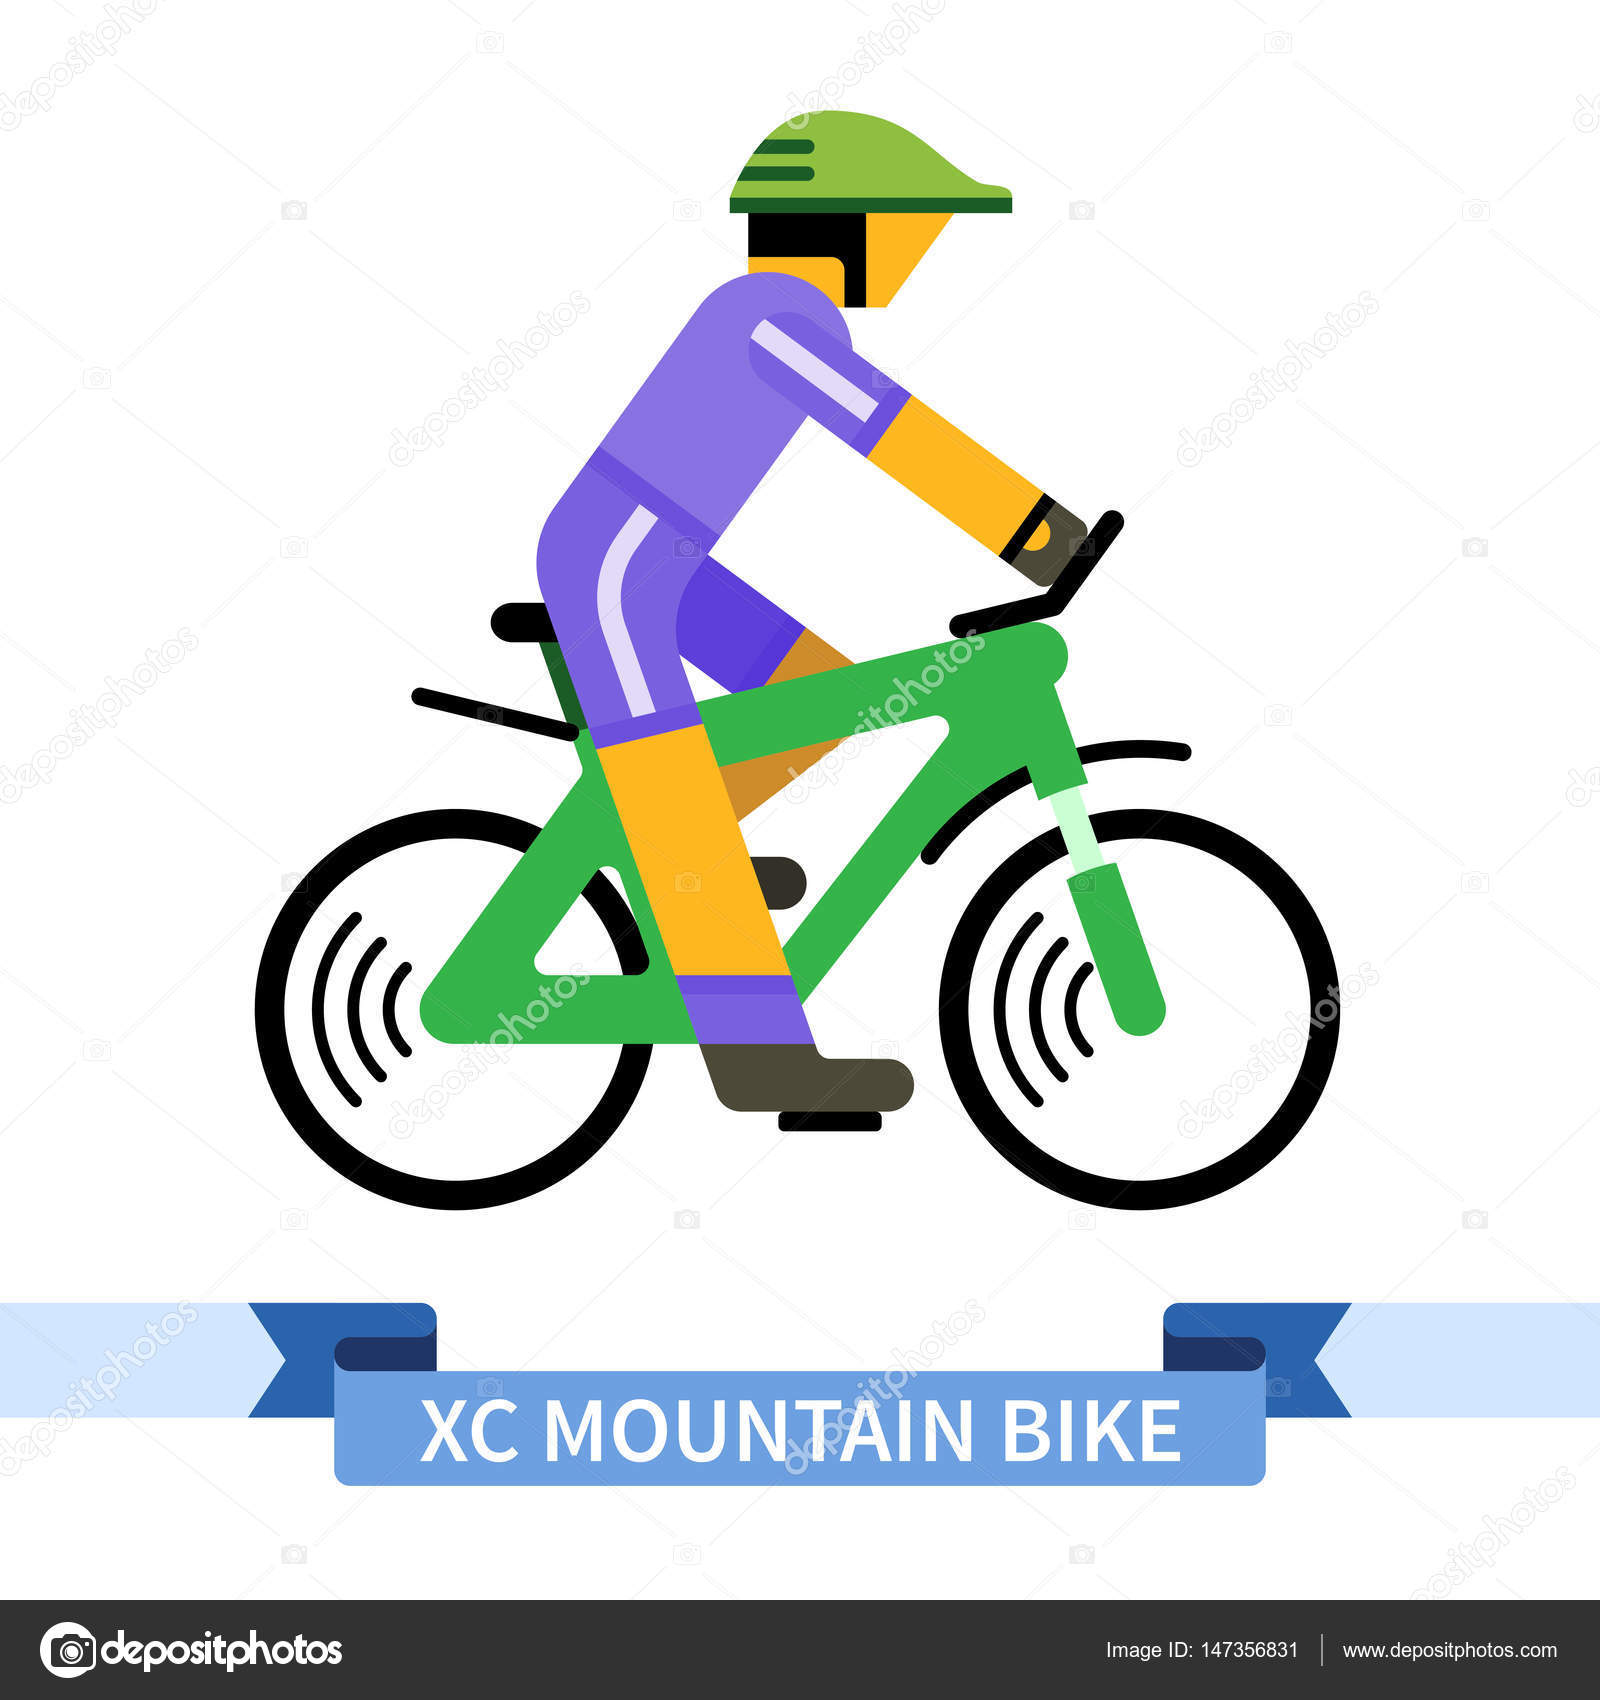 Bicyclist On Cross Country Mountain Bike Simple Side View Clipart Drawing In Flat Color